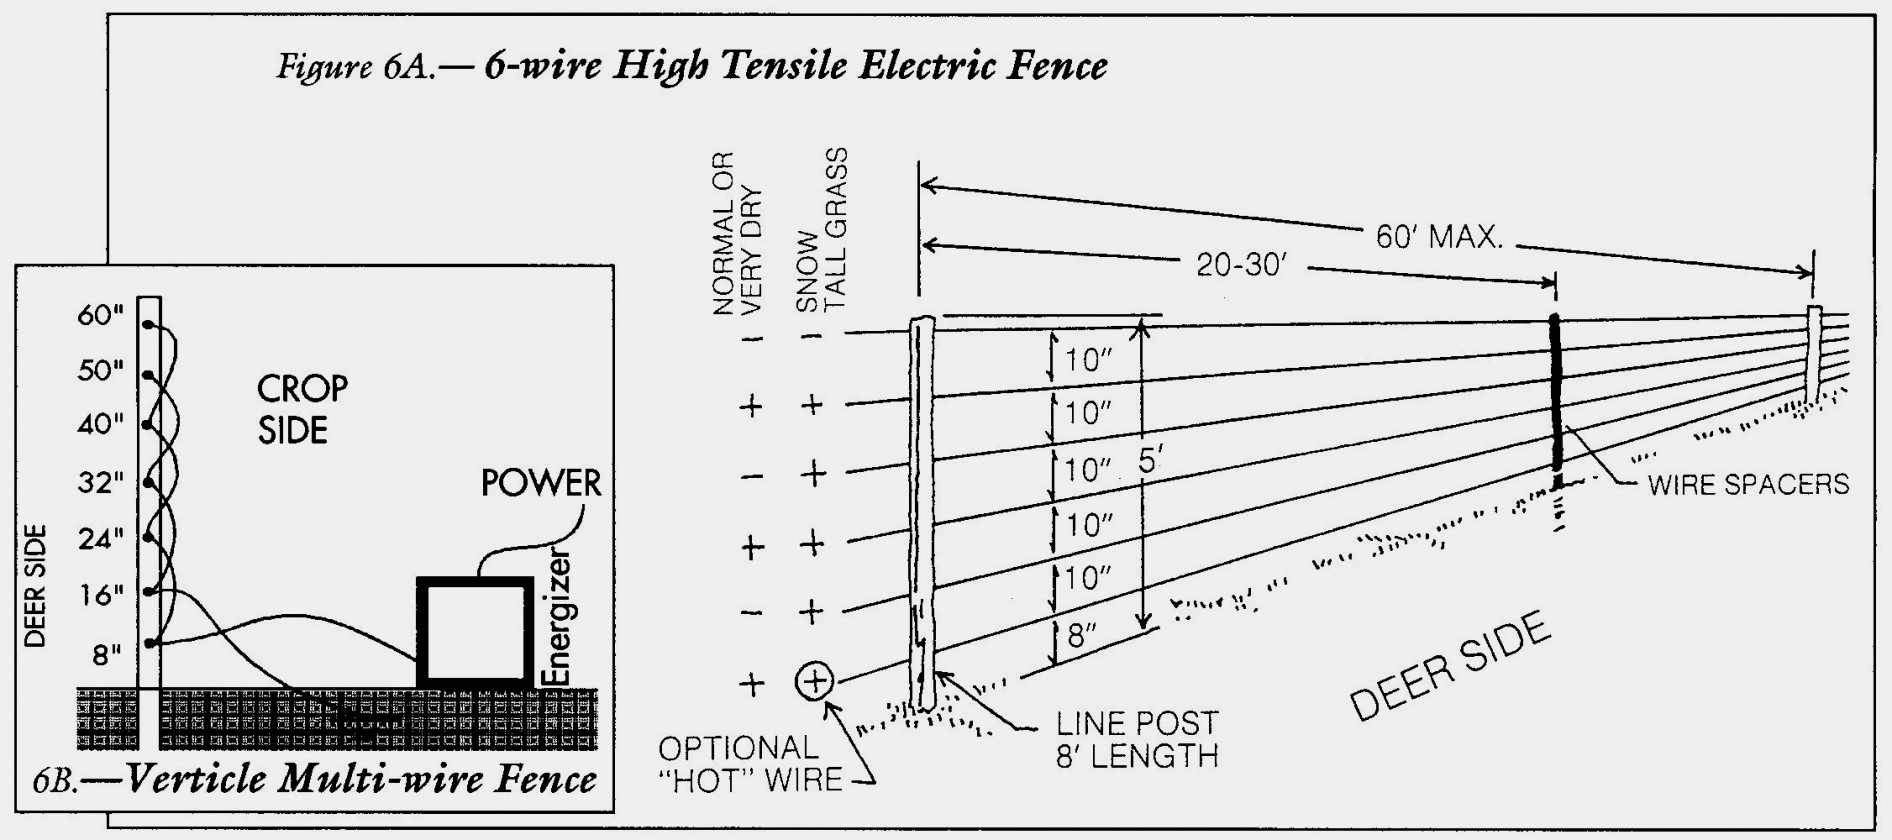 Solar Wire Fence Diagram | Wiring Diagram - Electric Fence Wiring Diagram